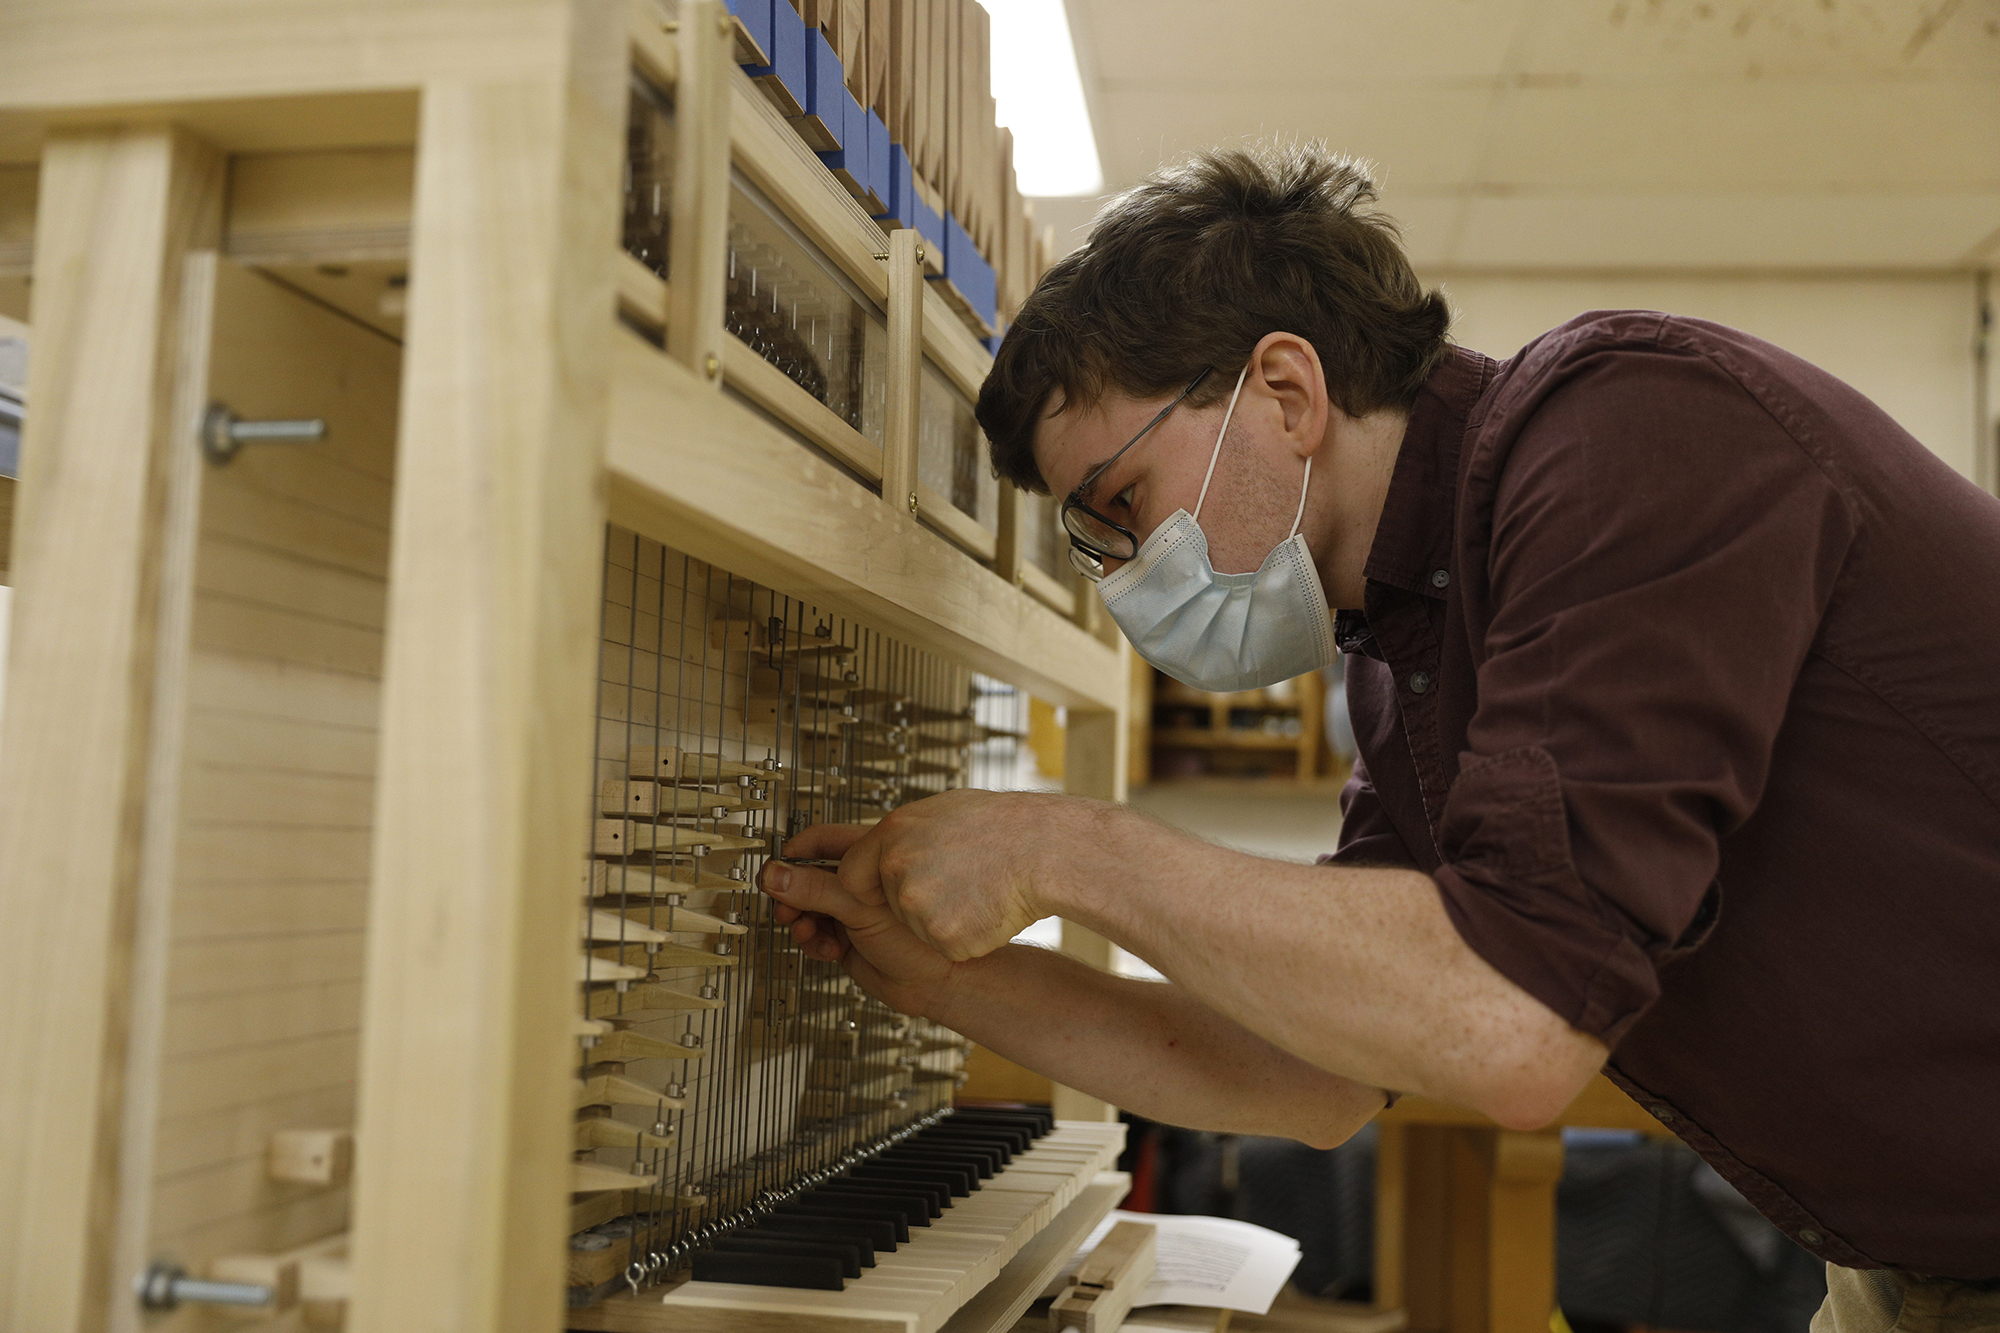 Kelly Cleveland uses a hand tool to adjust the mechanics of his pipe organ.